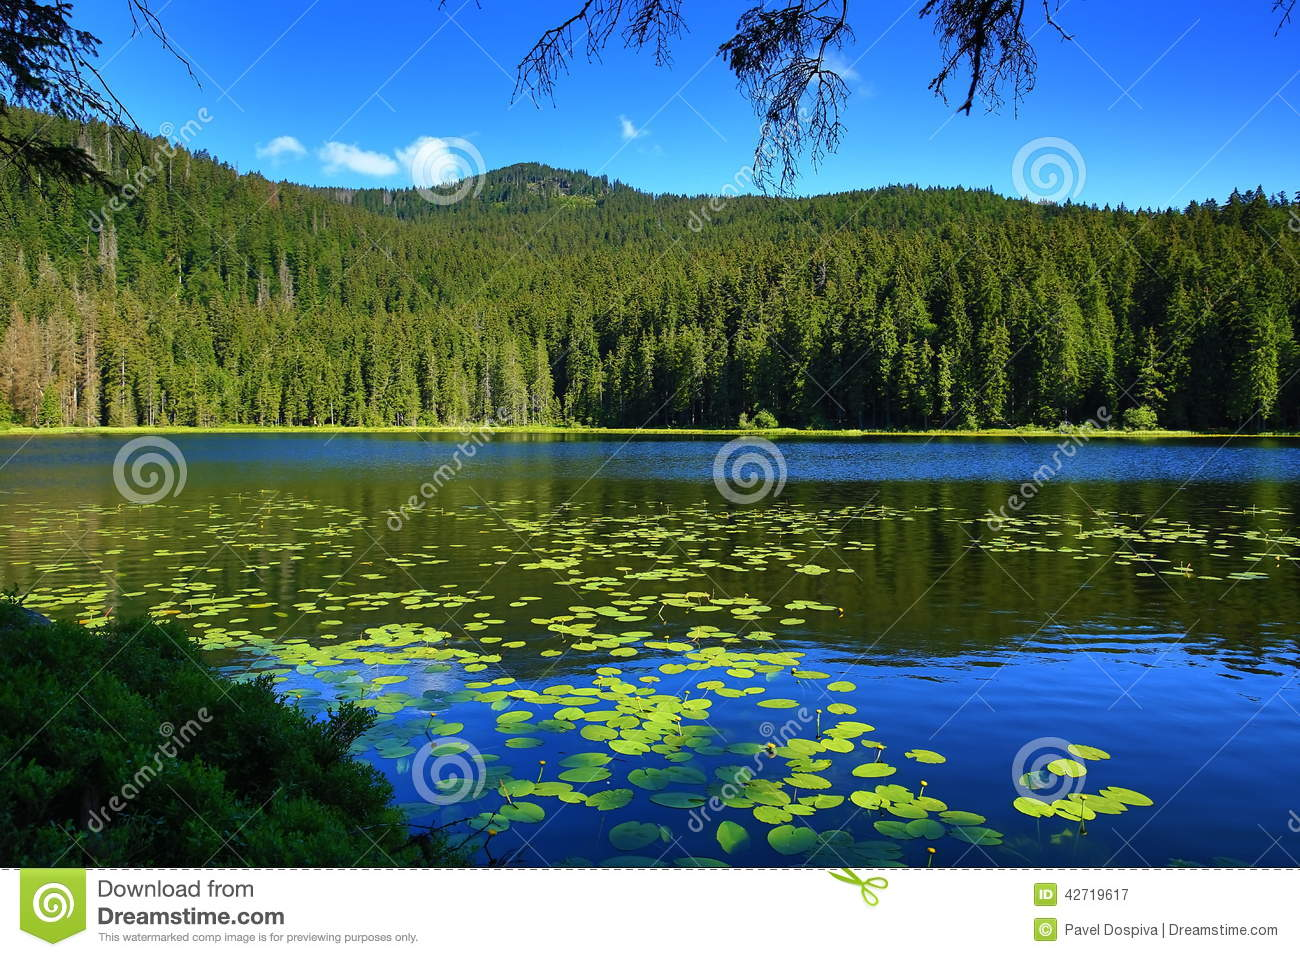 Grosser Arbersee, Bavarian Bohemian Forest, Germany Stock Photo.